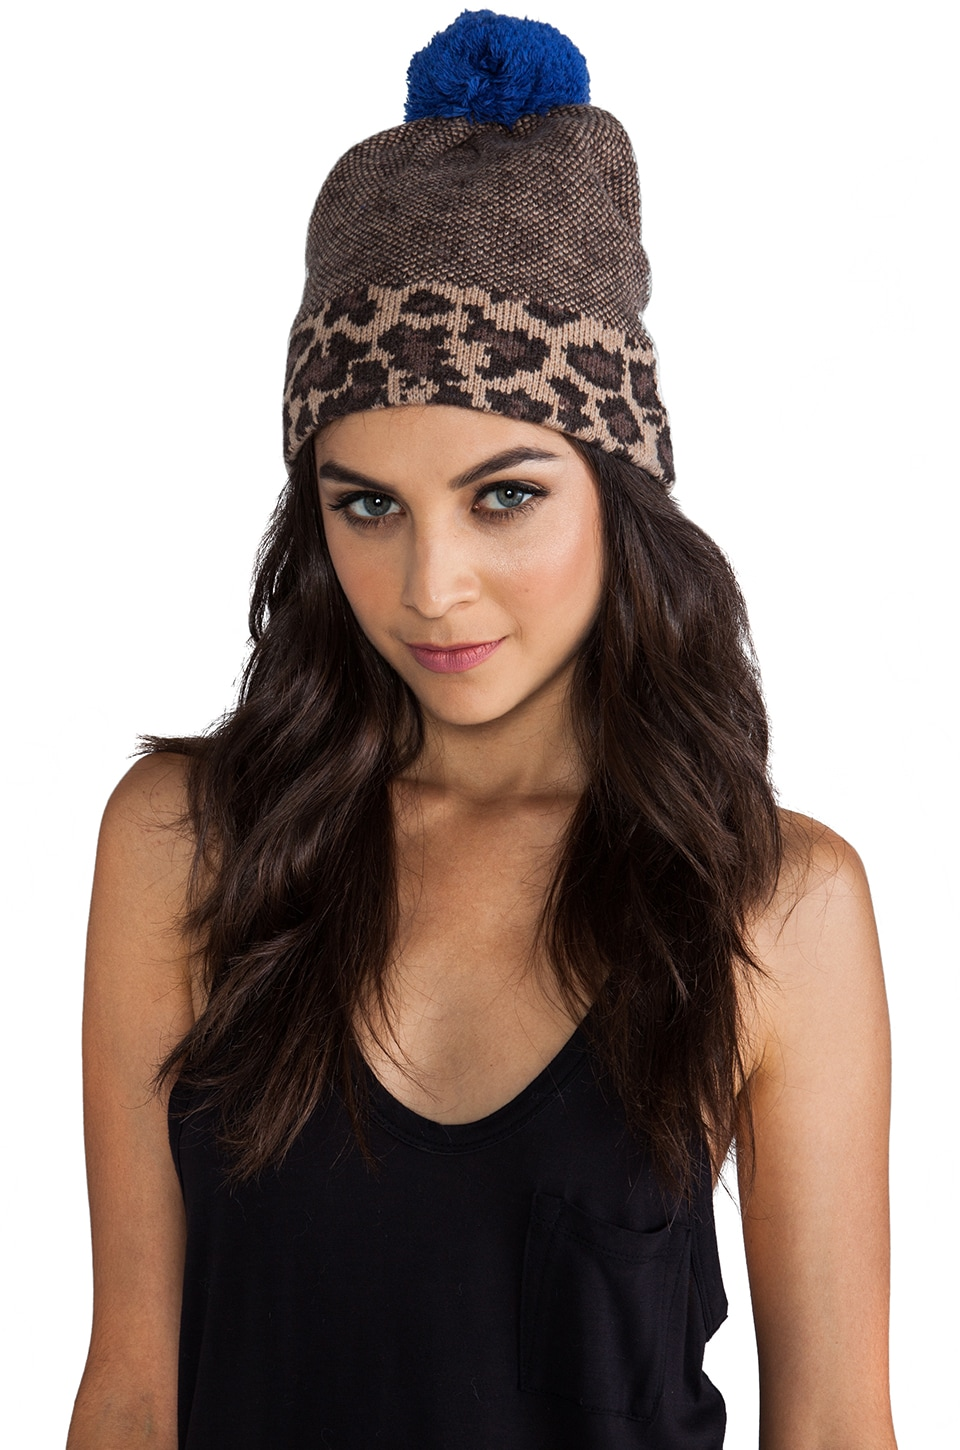 Marc by Marc Jacobs Lenora Leopard Hat in Chicory Brown Multi